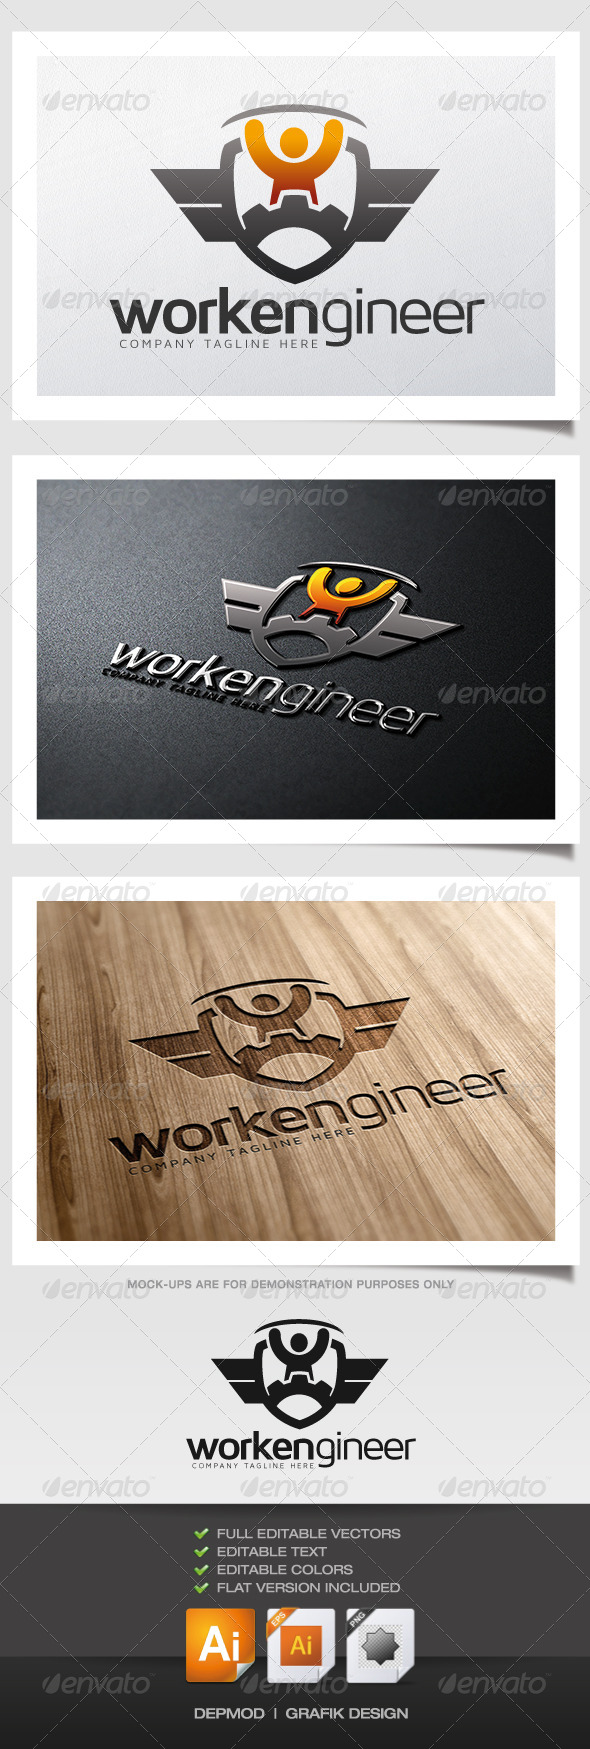 GraphicRiver Workengineer Logo 6059134